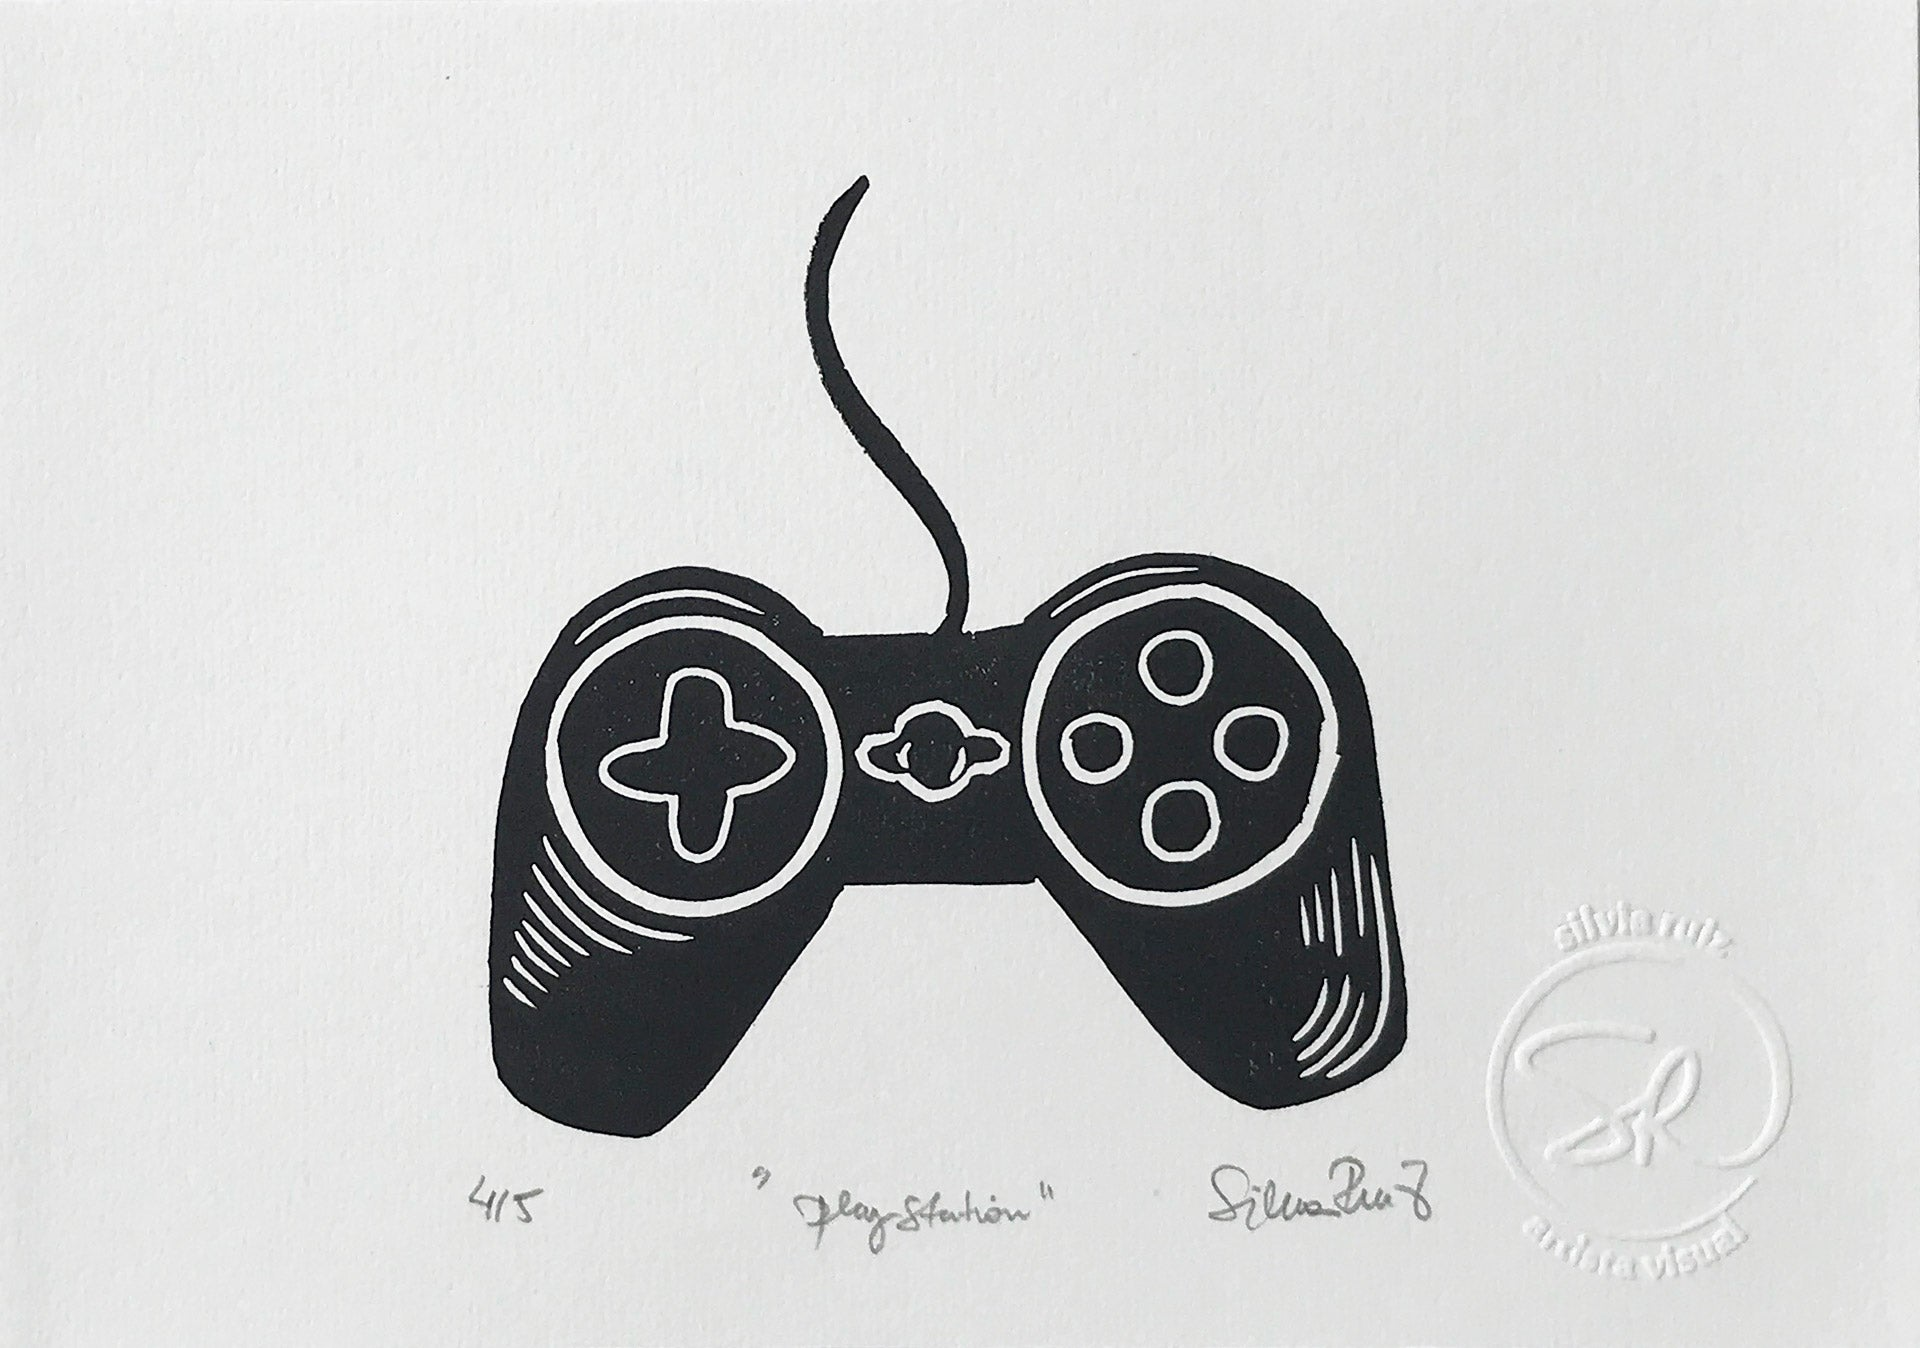 Playstation // Silvia Ruiz